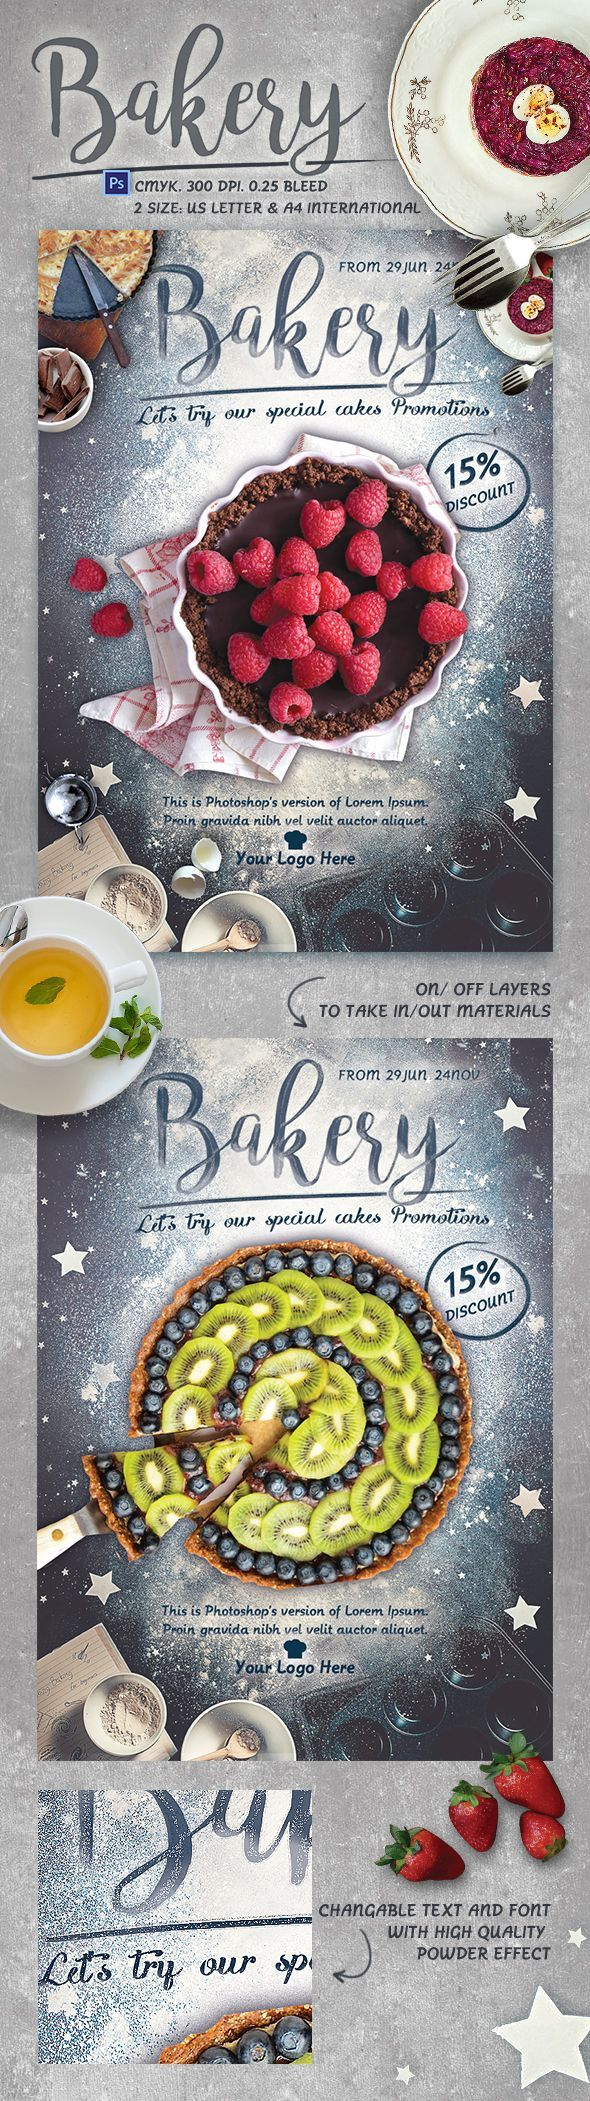 Bakery Promotion Flyer Template bake, baker, baking, breakfast, cake, coffee shop, cook, cooking, discount, flyer, hand made, lotteria, mousse, powder, promotion, restaurant, tart, template, tools, top view